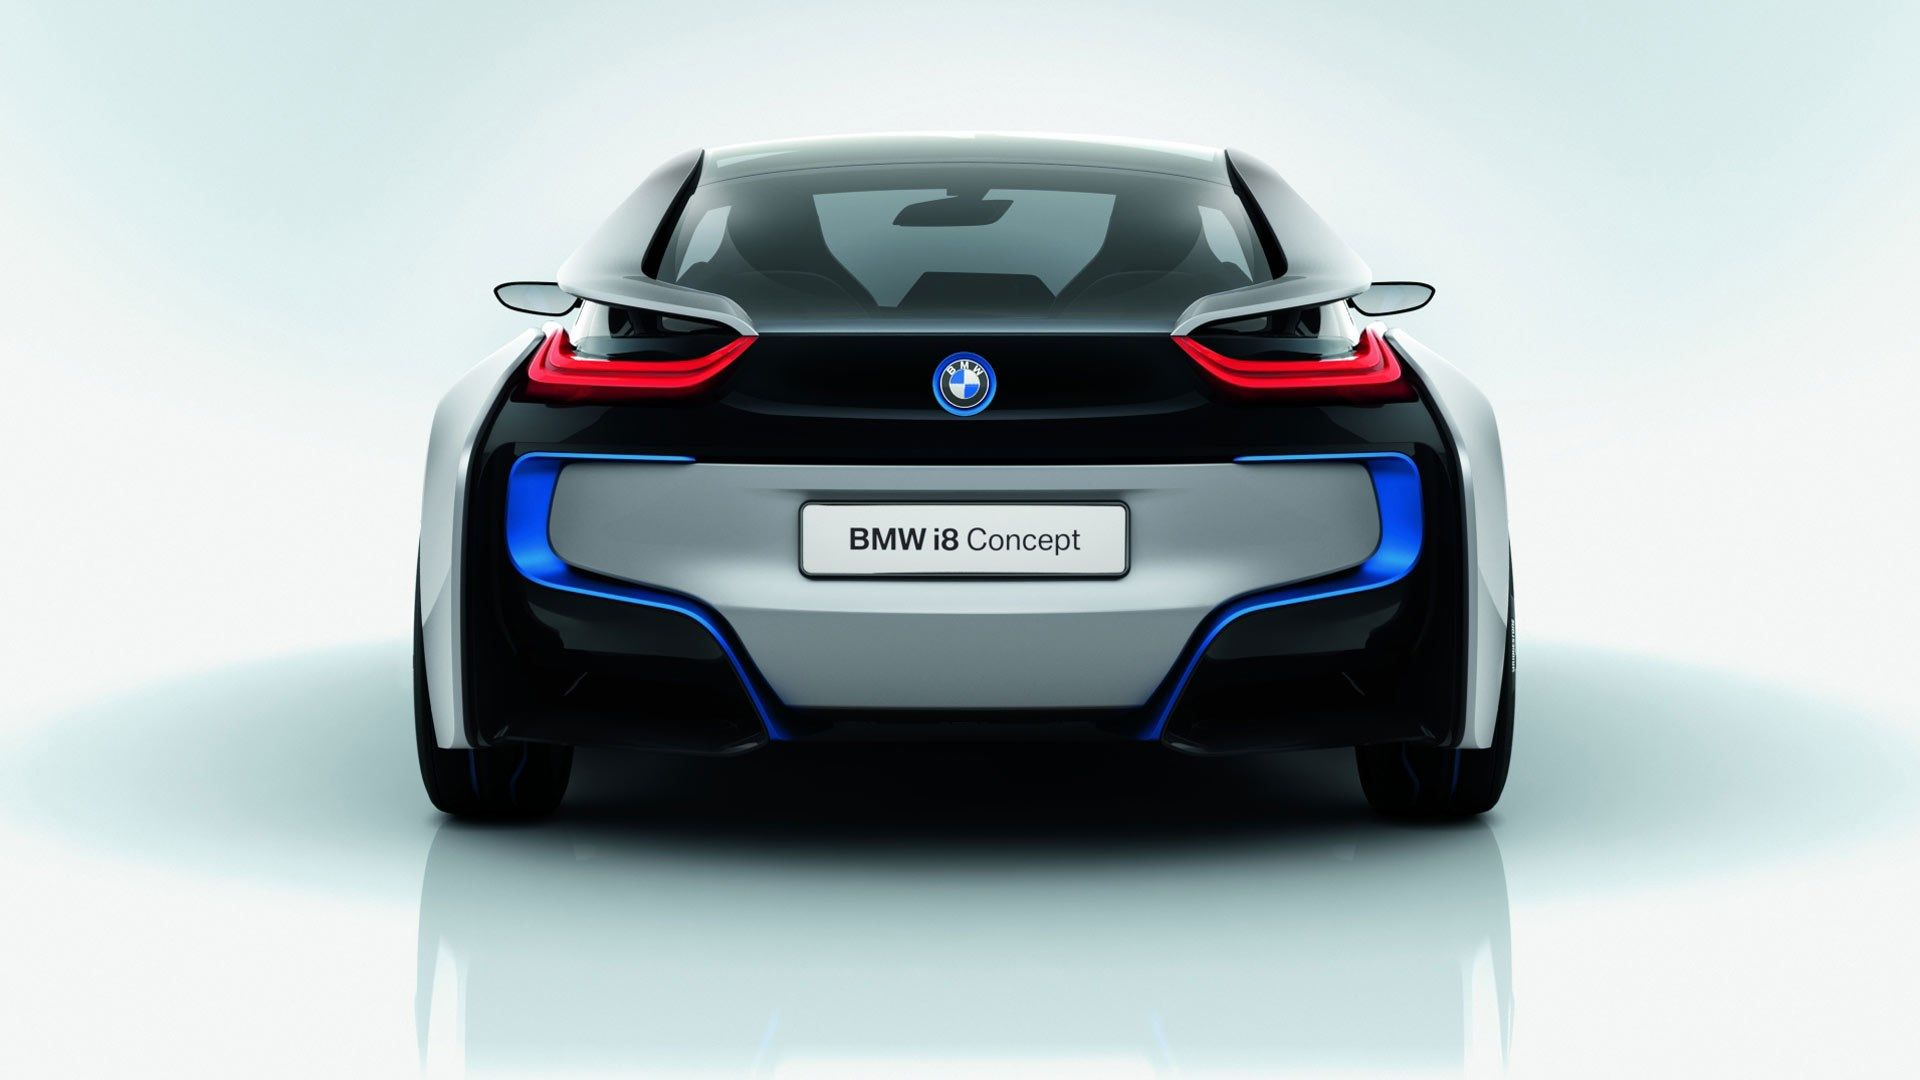 Free bmw i8 image Queen Black